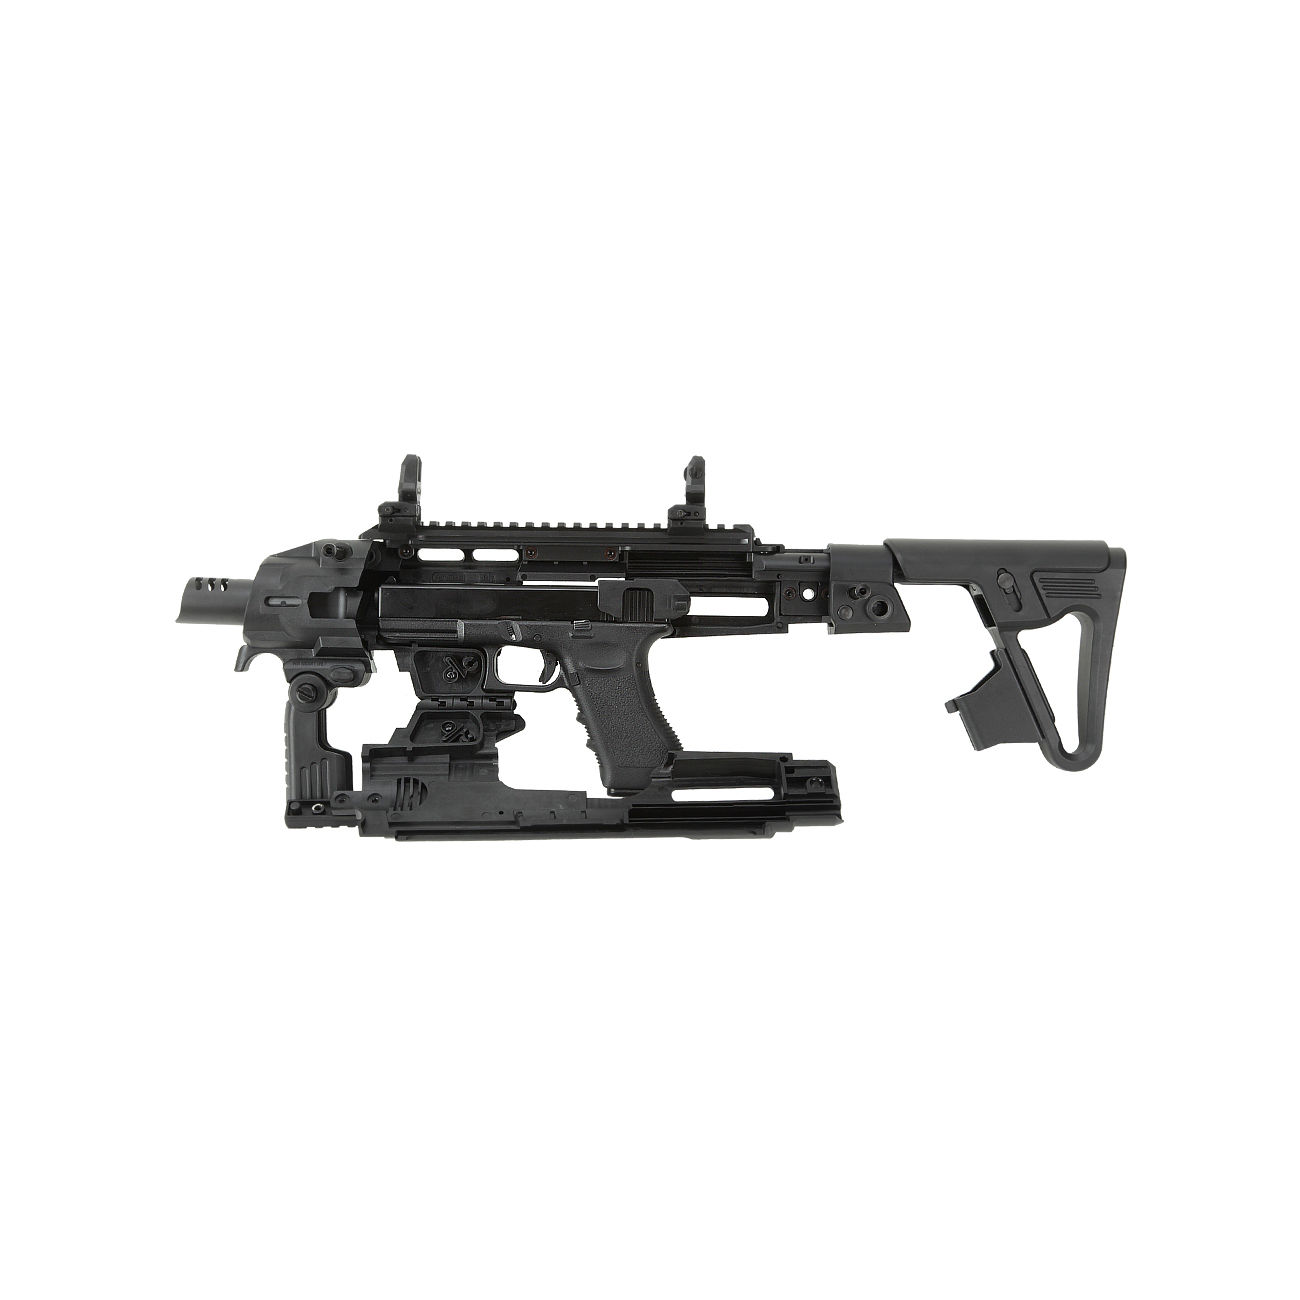 CAA Airsoft Division RONI Carbine Conversion Kit f. TM / KSC / WE G17 / G18C / G18 / G23F schwarz 4